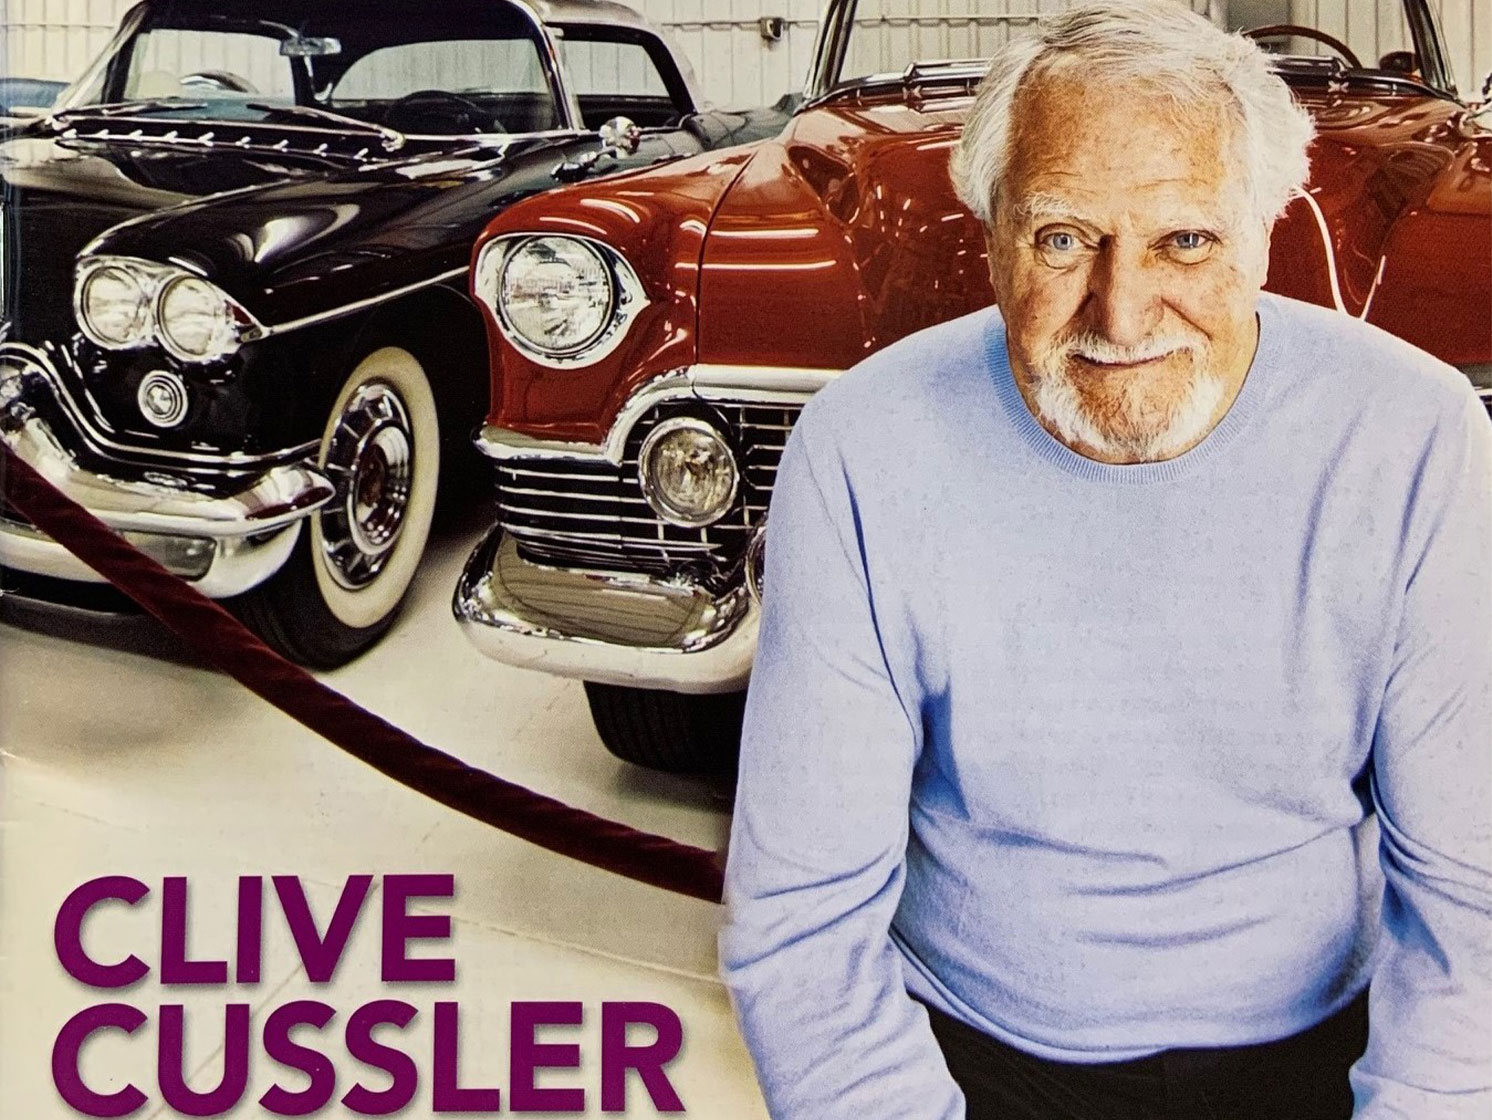 Author, adventurer, and classic car collector Clive Cussler dies thumbnail